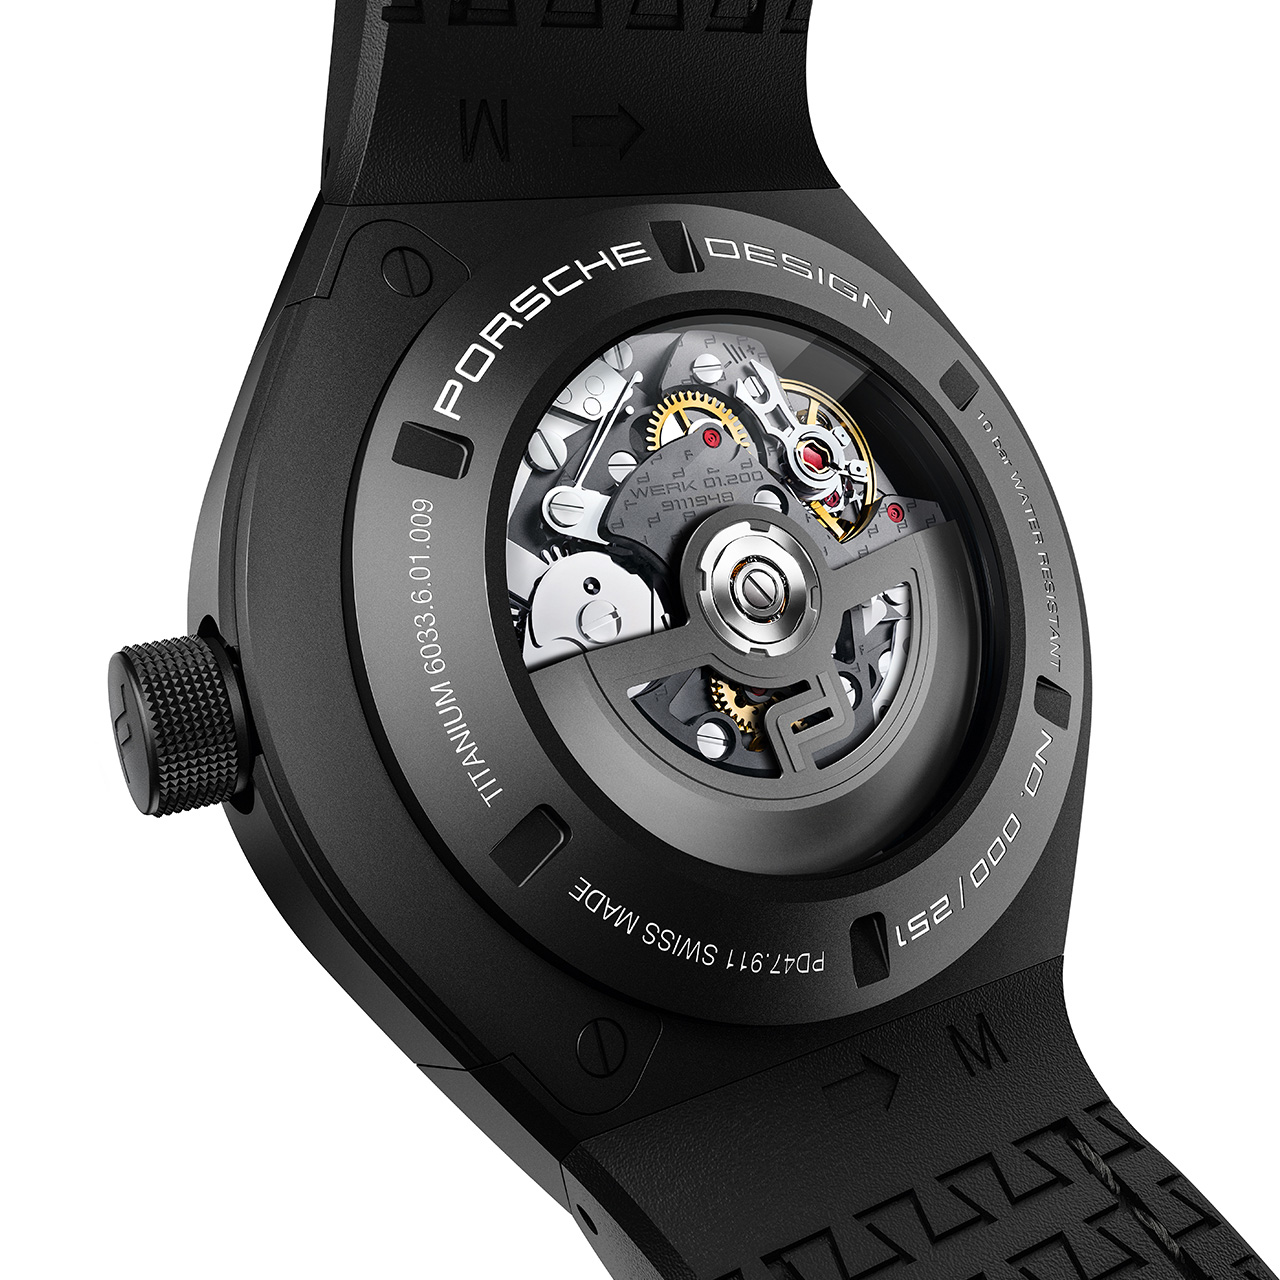 Monobloc Actuator Chronotimer Flyback – Limited Edition